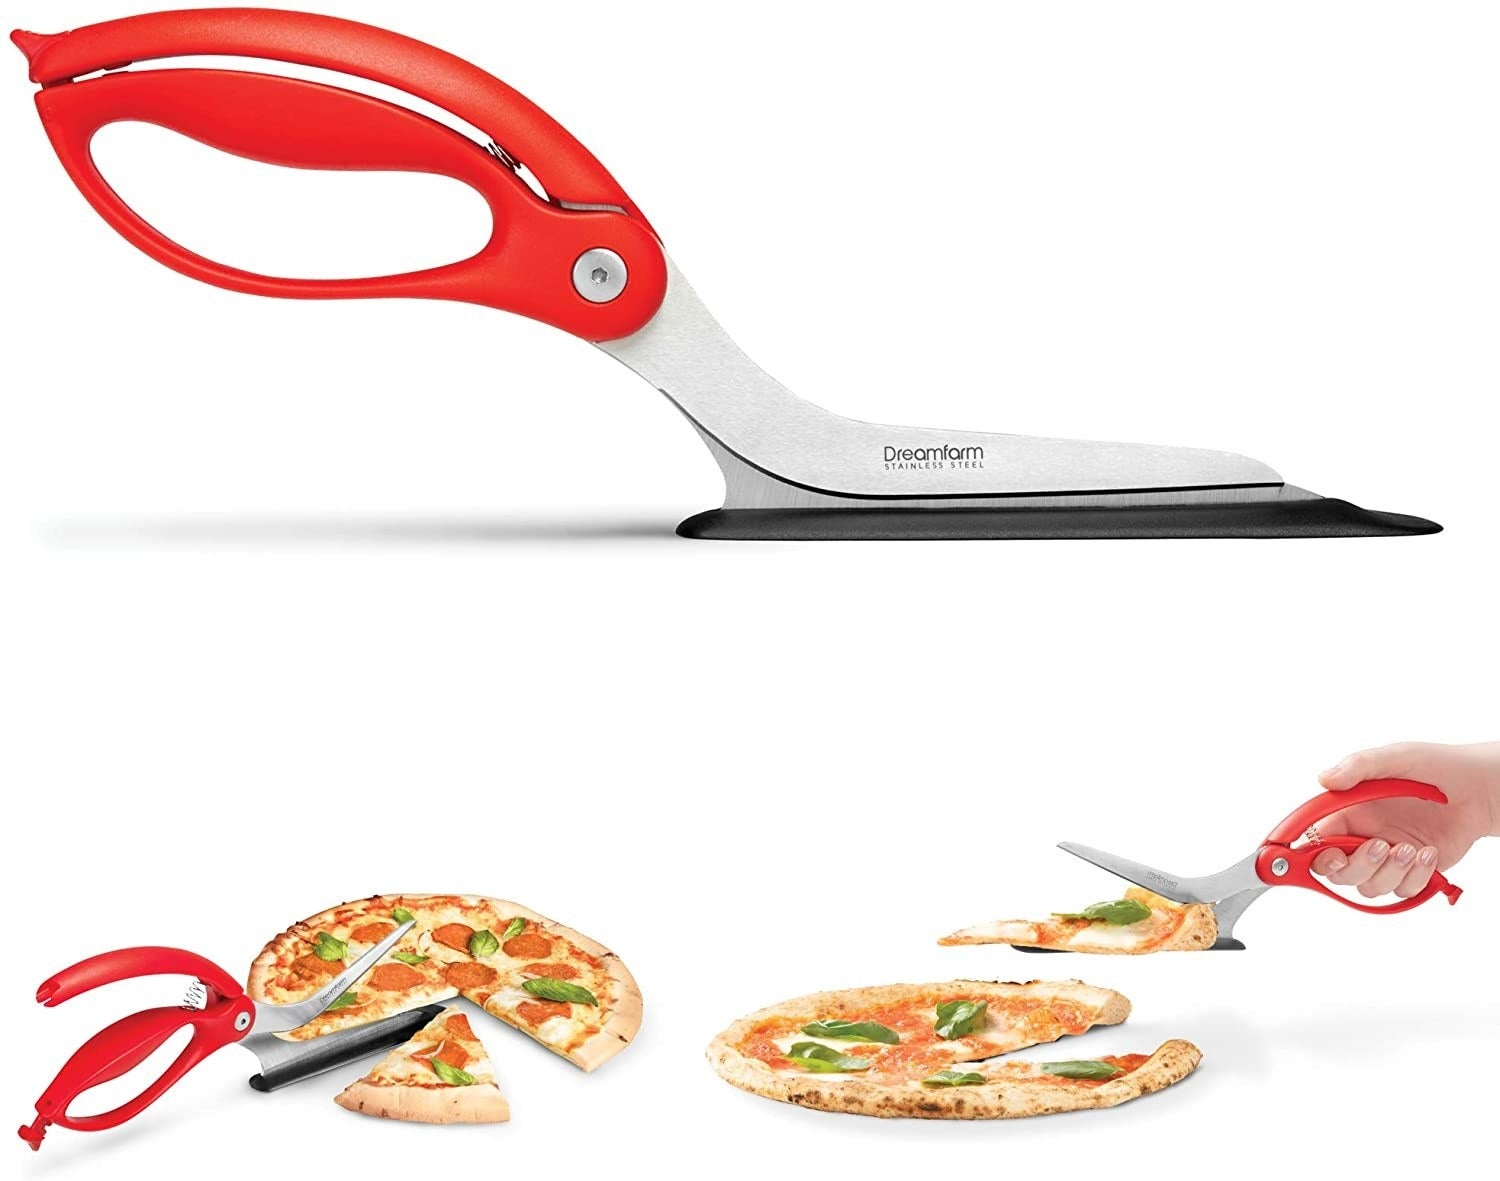 the red scissors cutting a slice of pizza